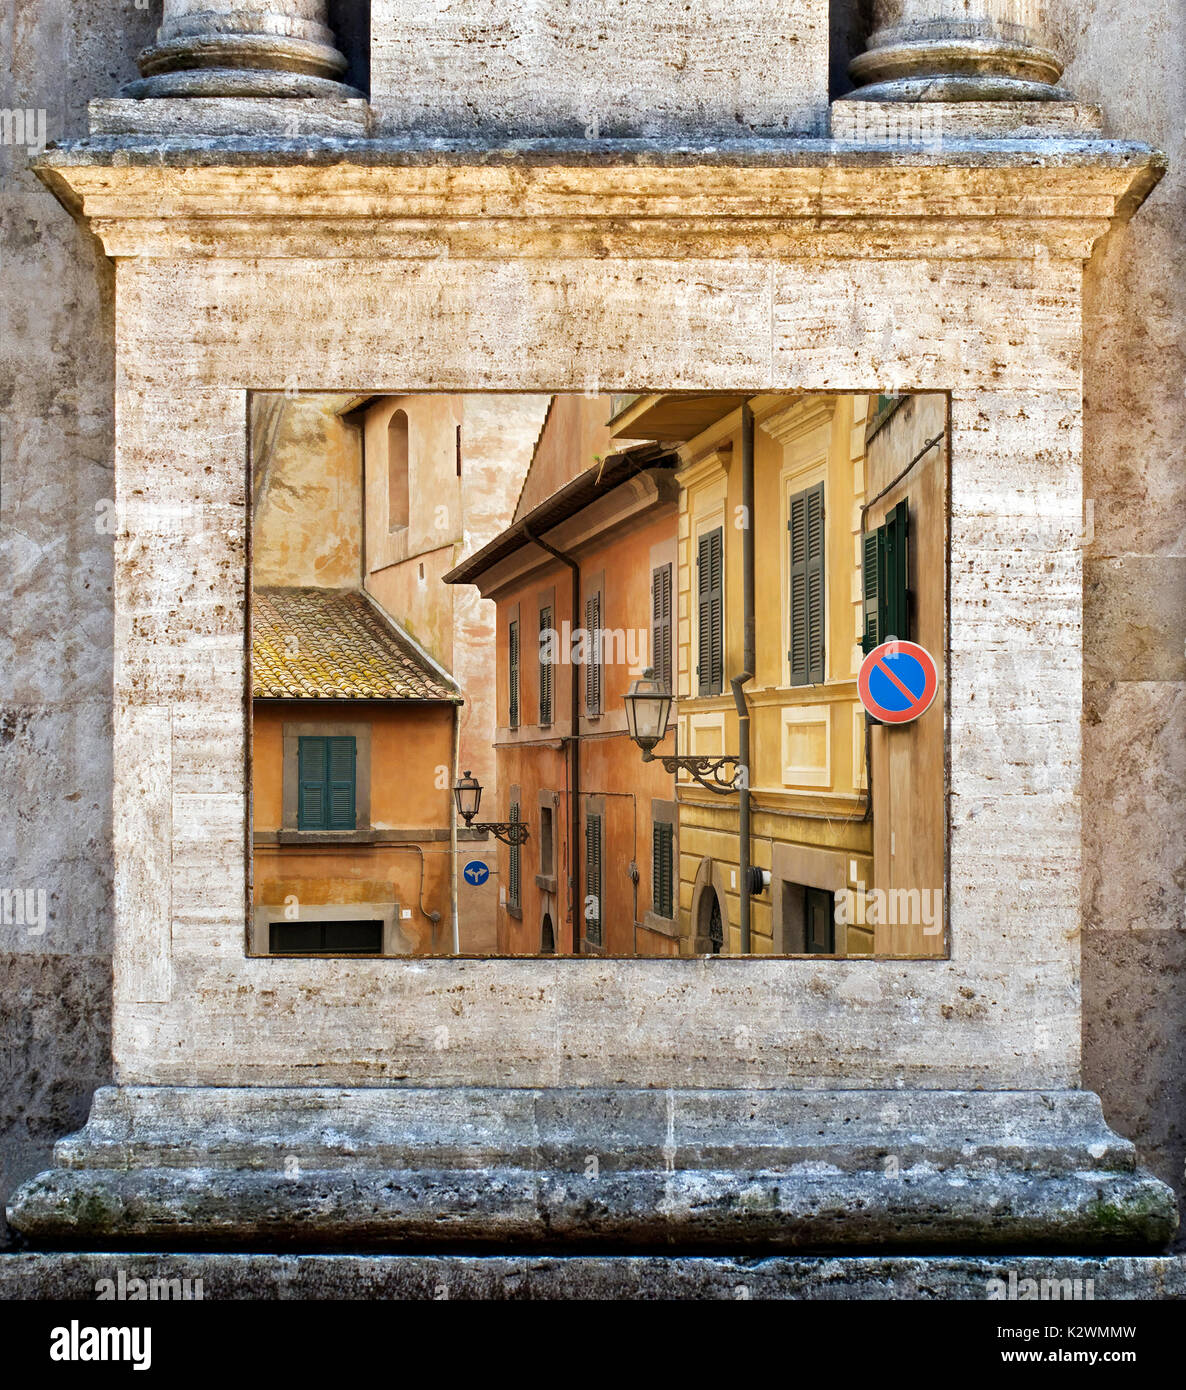 THIS IS A PHOTOGRAPH WITHIN ANOTHER PHOTOGRAPH. THE FRAME IS A COLUMN FROM PIENZA USE TO FRAME THE PHOTO MADE ON Stock Photo